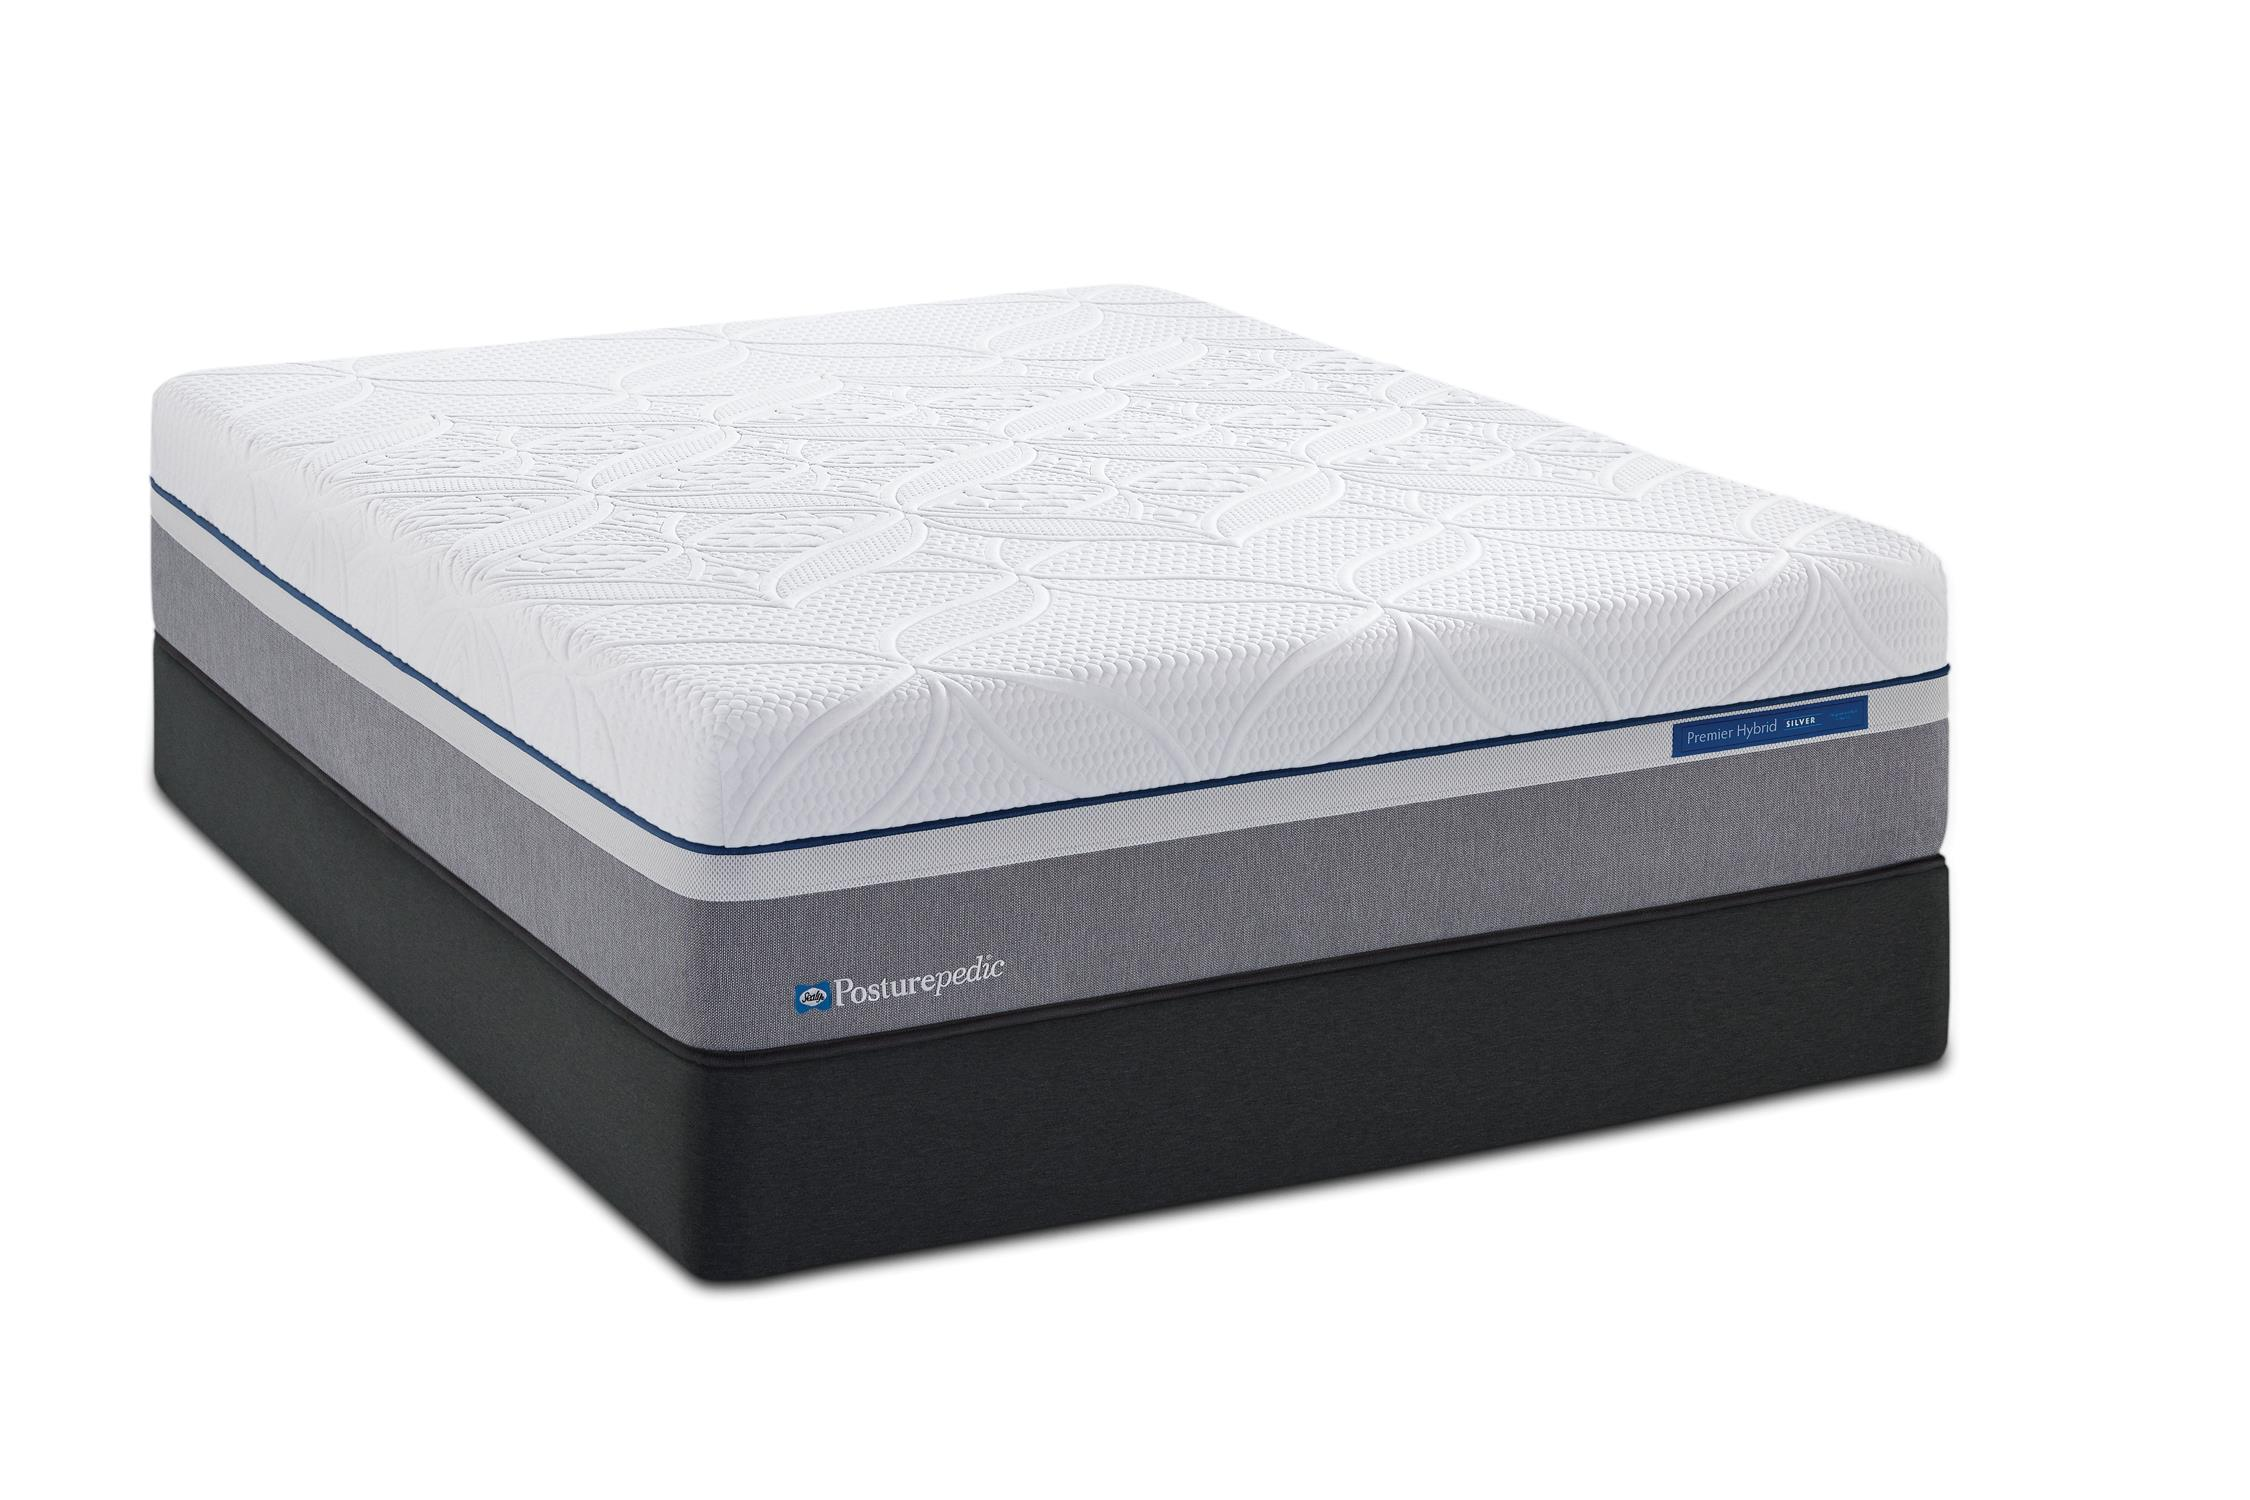 Sealy Posturepedic Hybrid Cobalt Queen Firm Hybrid Mattress LP Set - Item Number: FirmHybrid-Q+613792-Q